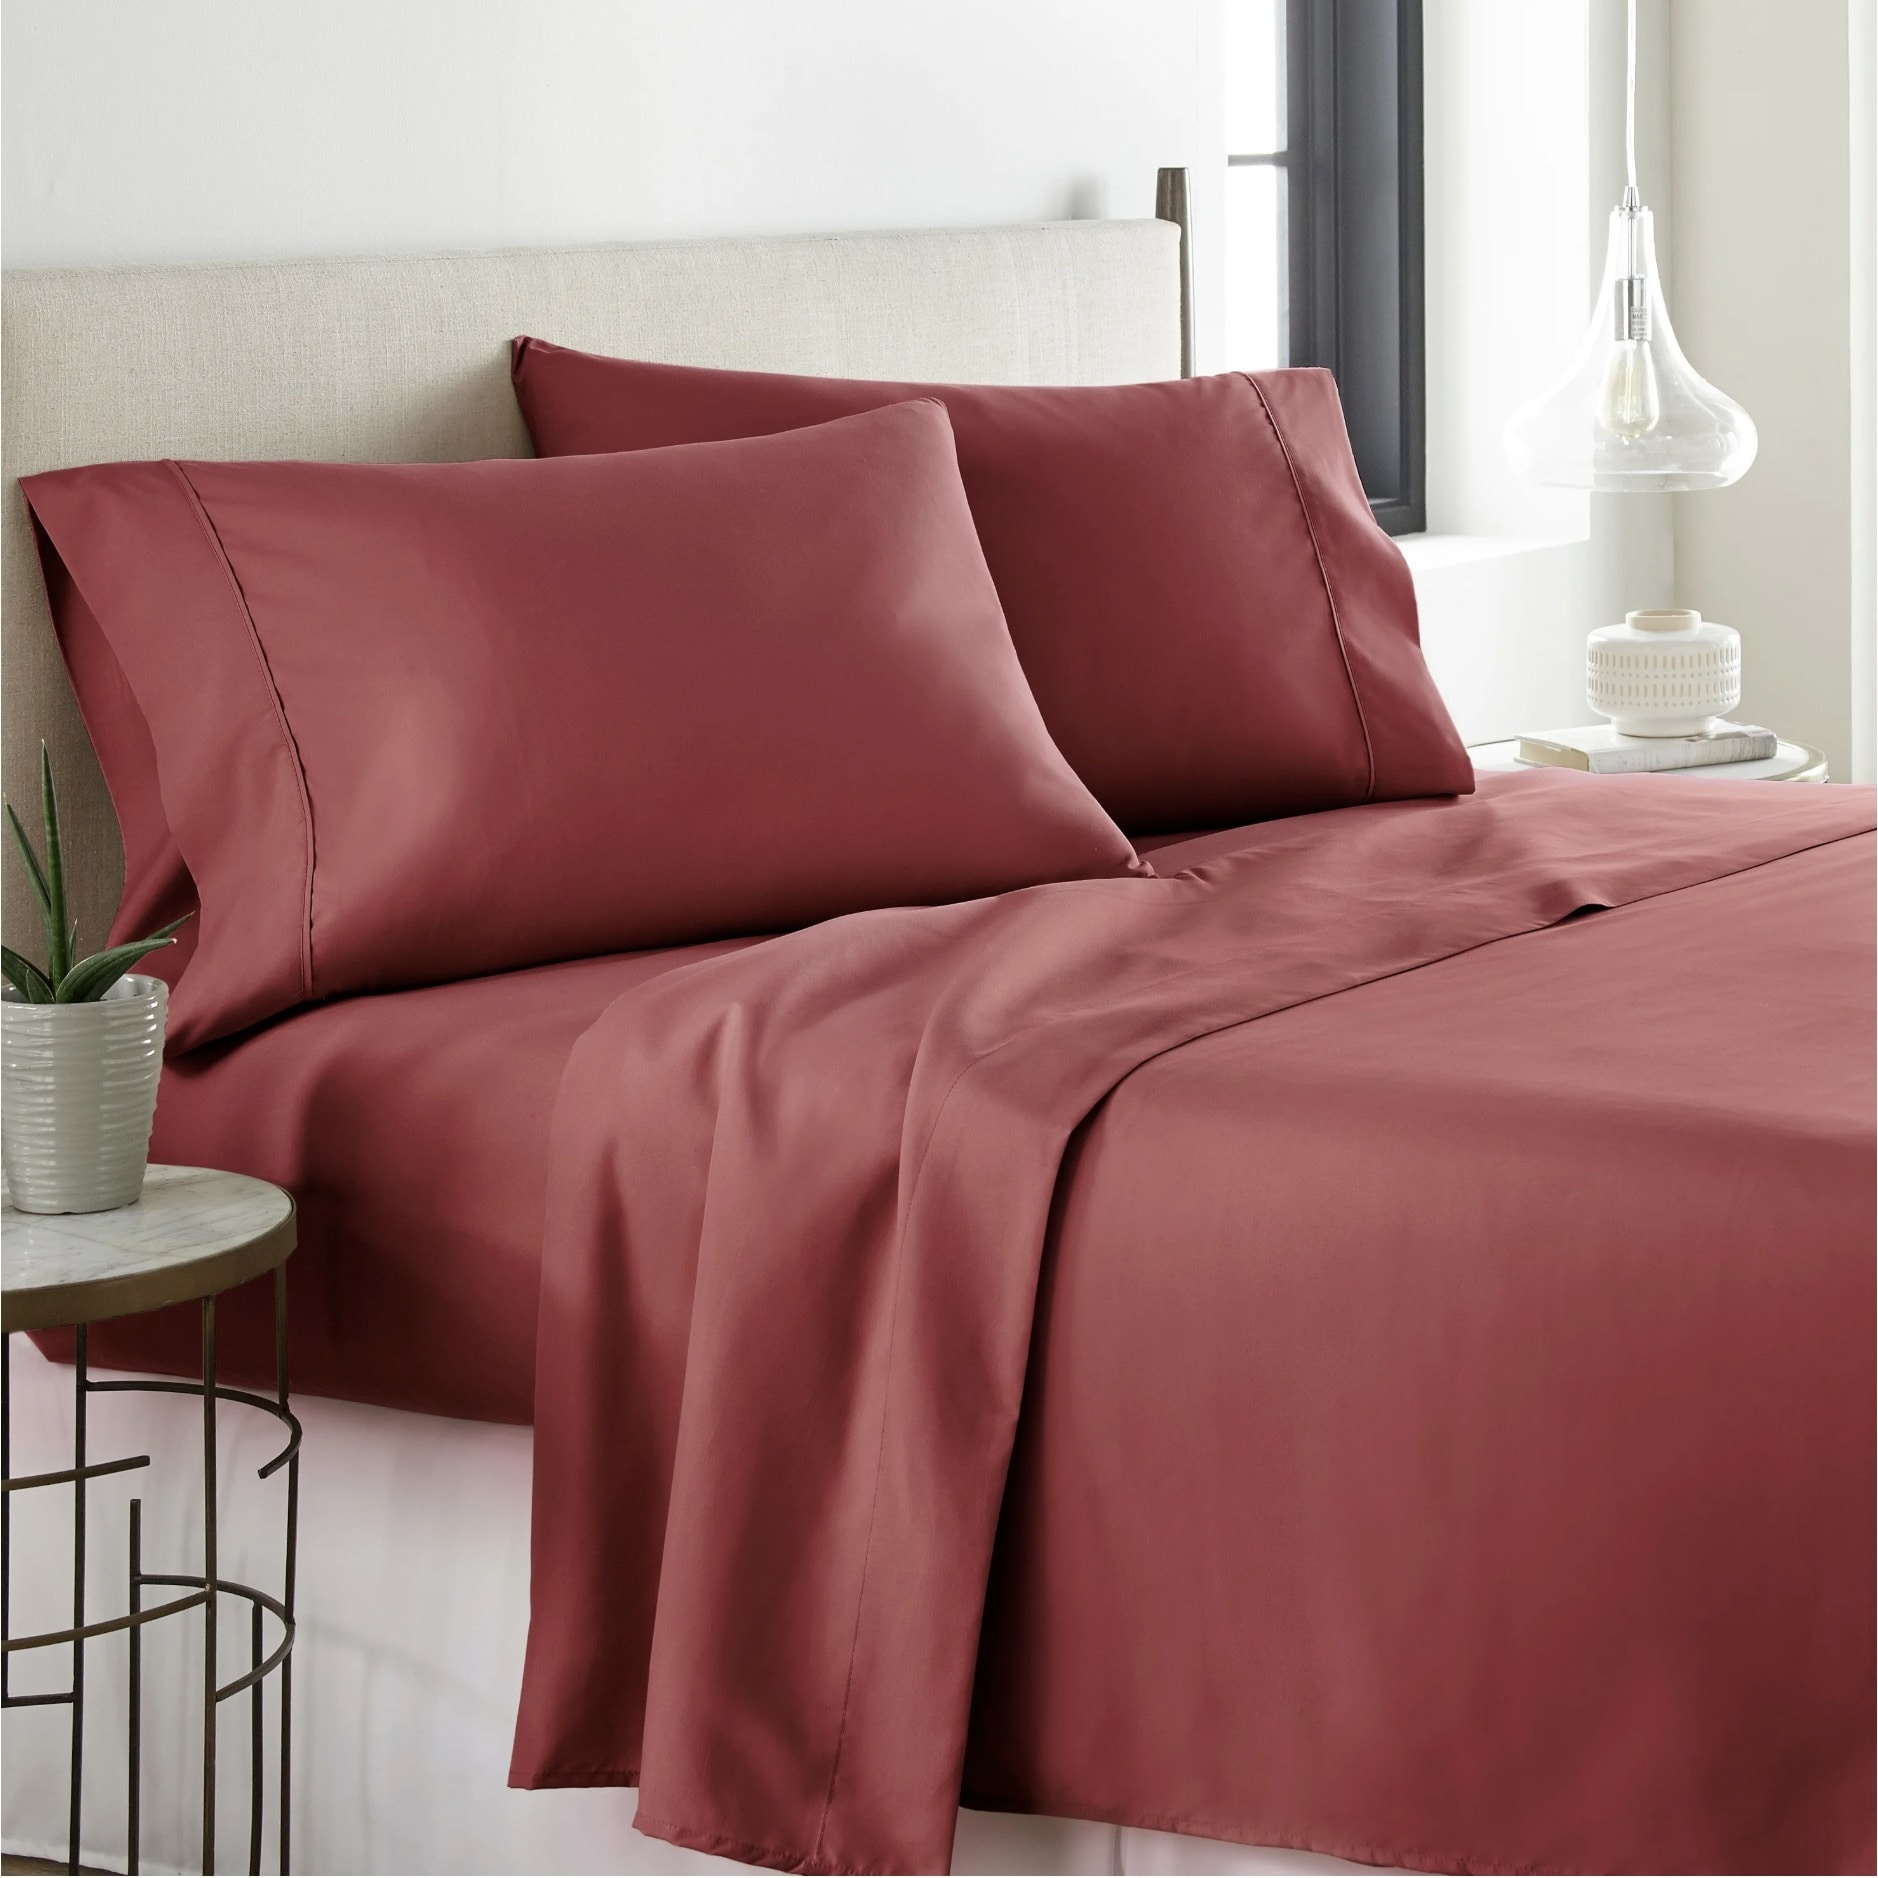 Wrinkle Fade Resistant Deep Sleep Home 4pc Bed Sheet Set Hypoallergenic Sheet Pillow Case Set Hotel Collection Queen, Pink Solid Color Deep Pockets